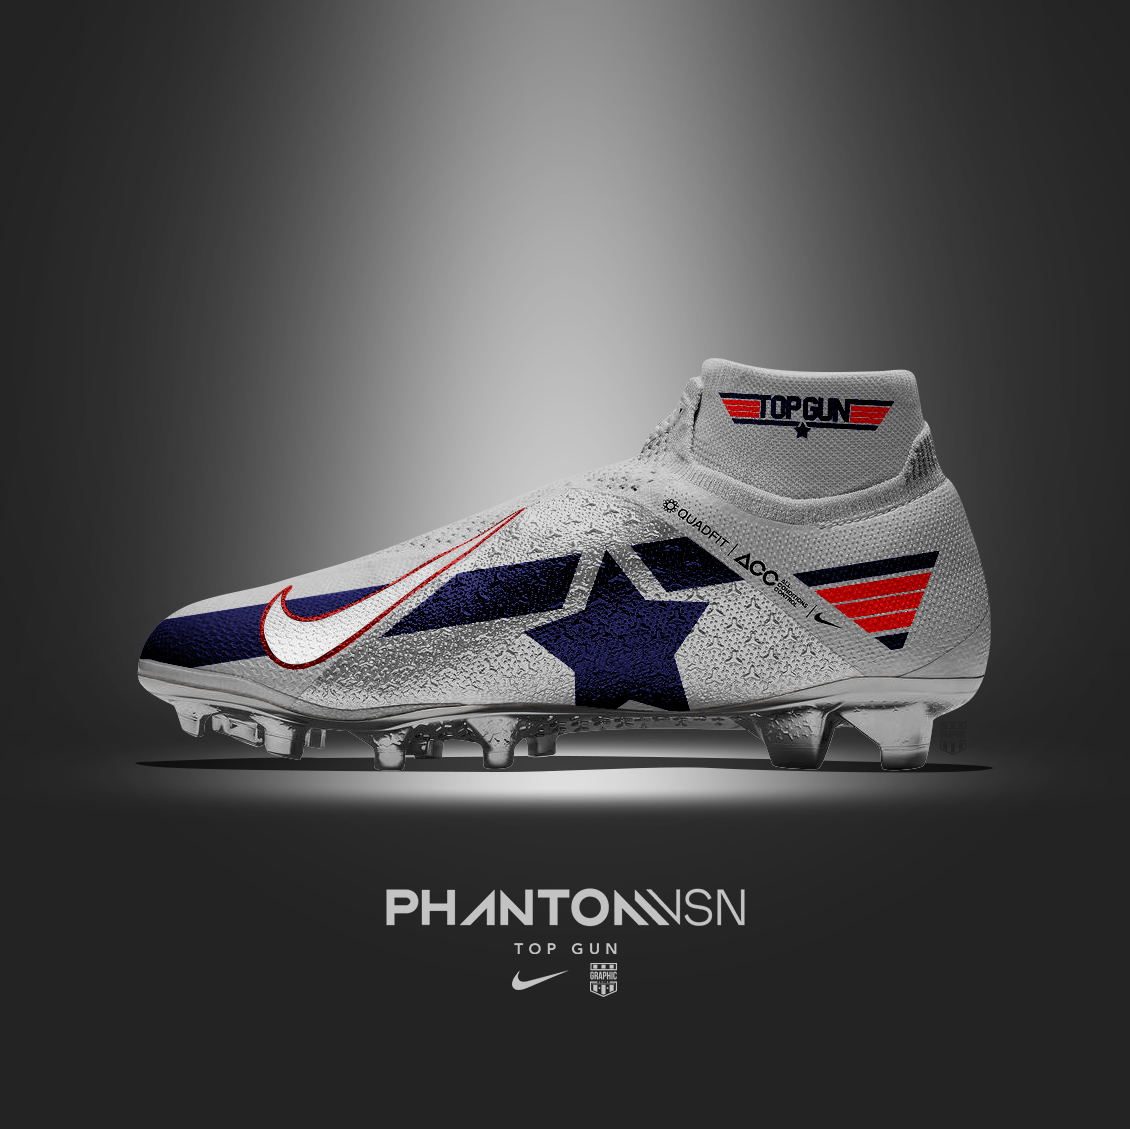 nike-phantom-vision-7eme-art-graphic-united-top-gun